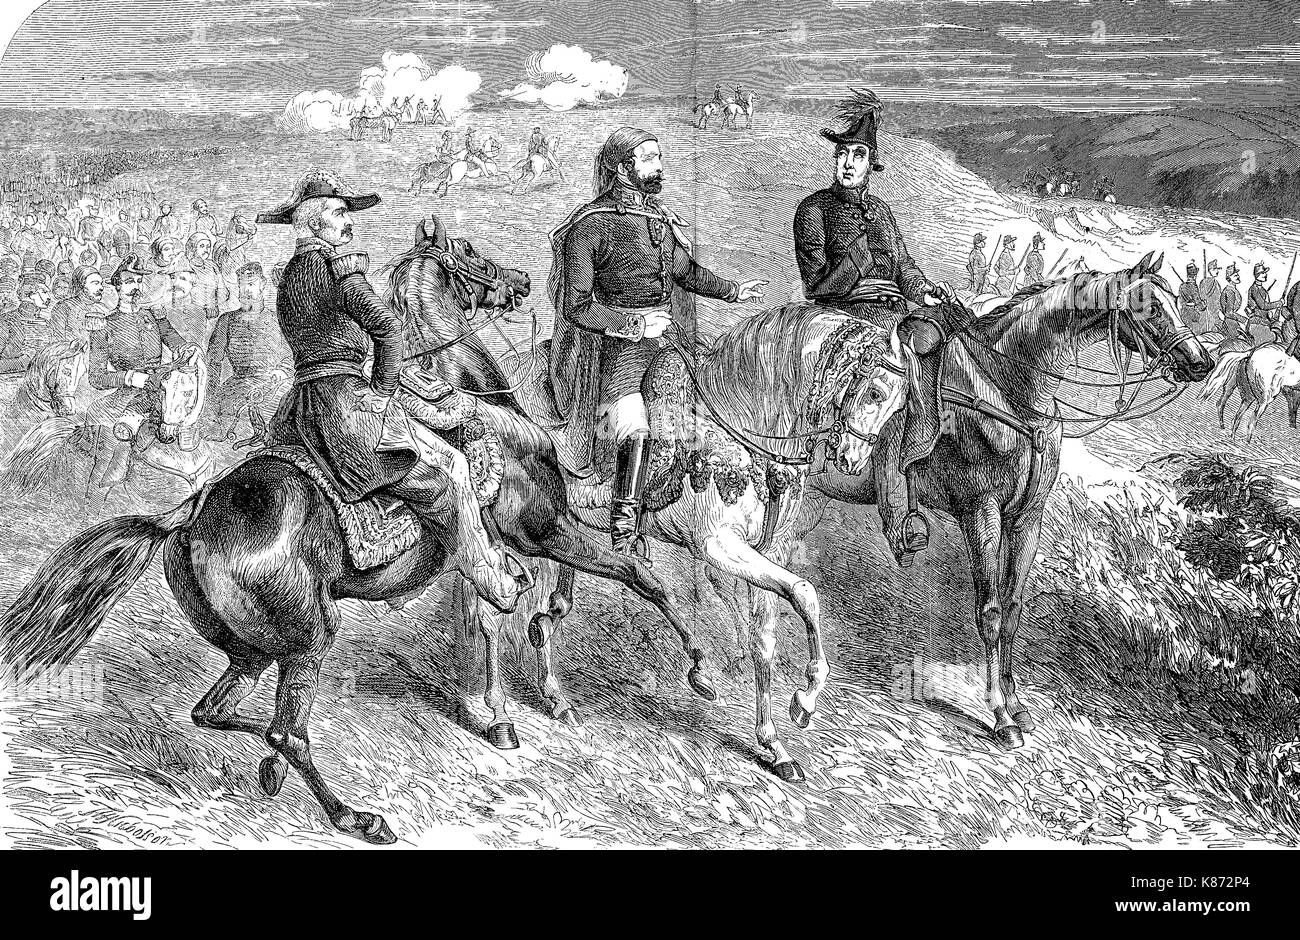 the generals Aimable-Jean-Jacques Pélissier, 1st Duc de Malakoff, Omar Pasha Latas and Lord Raglan, Crimean War, Siege of Sevastopol, 1855, Digital improved reproduction of an original woodprint from the 19th century - Stock Image